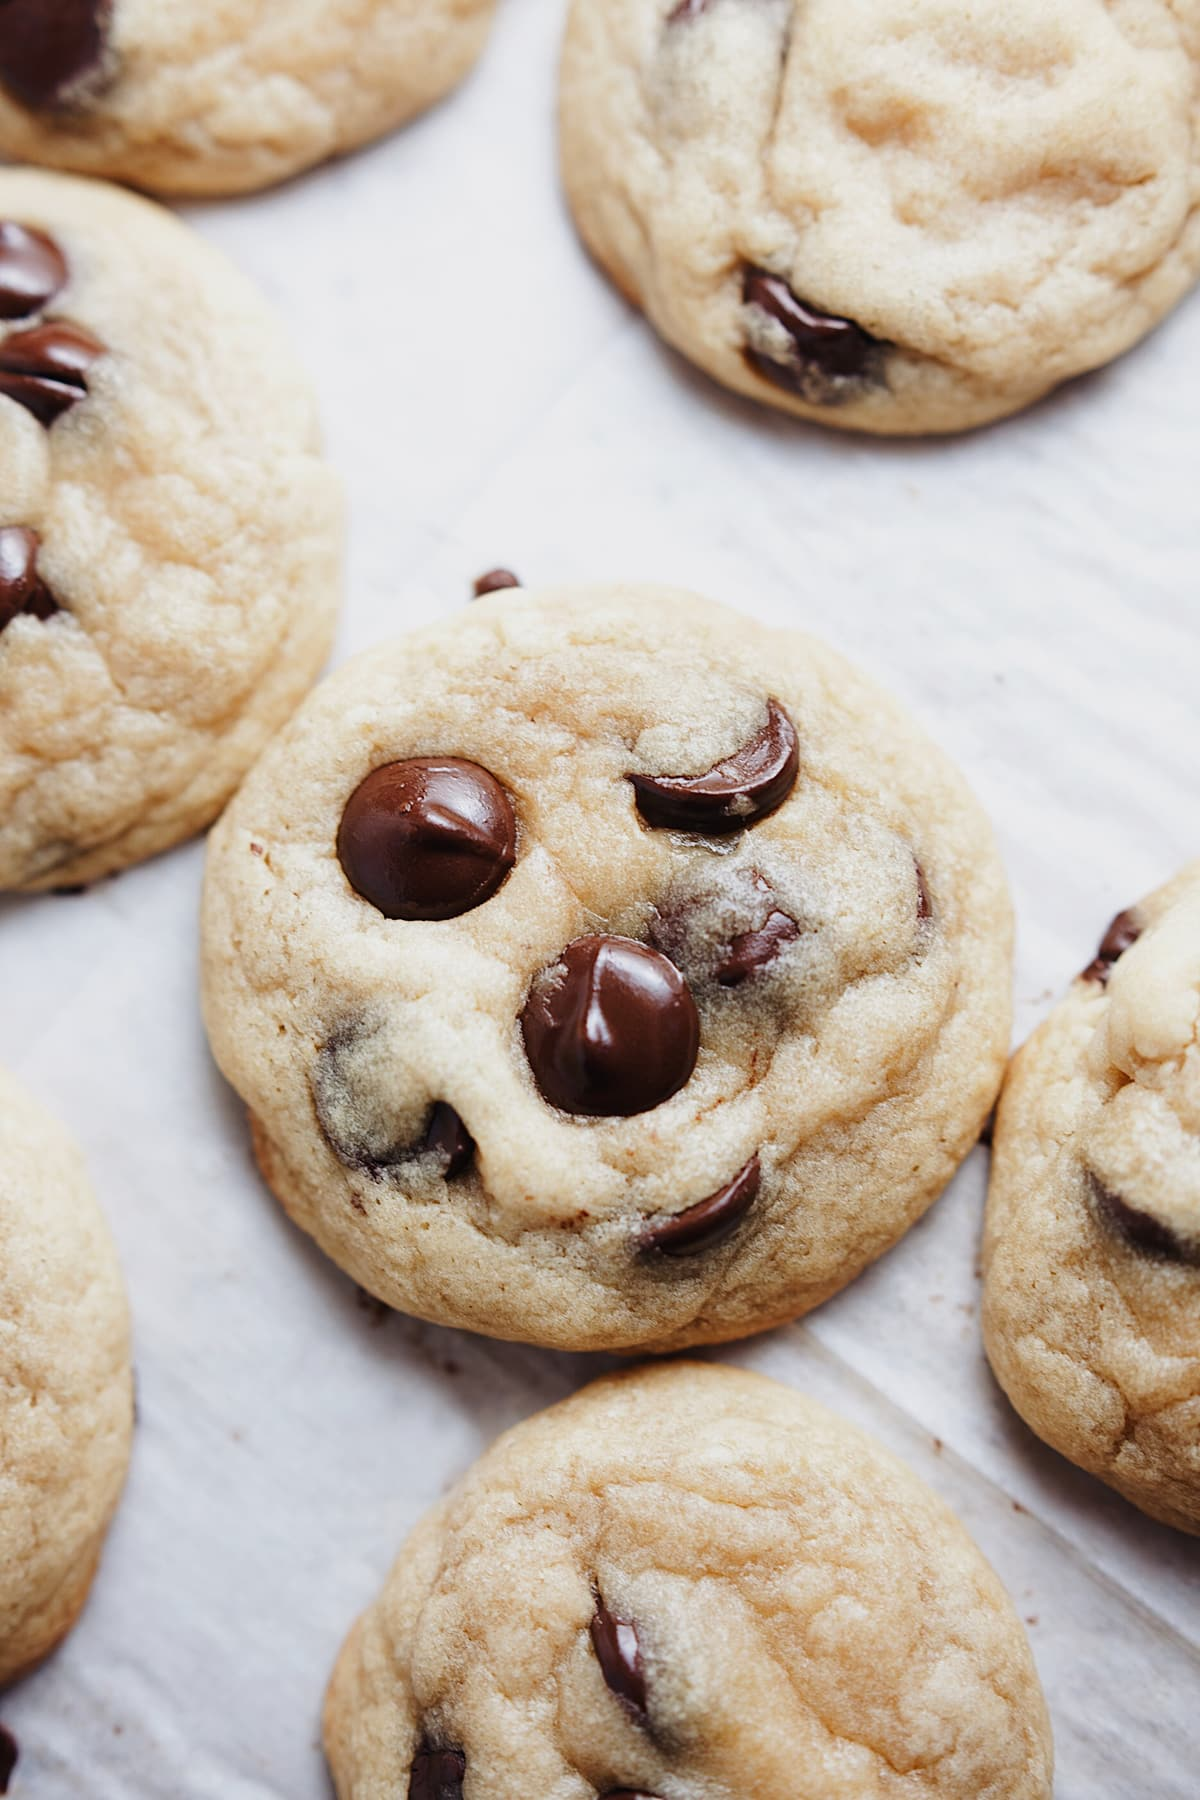 Chewy chocolate chip cookies laid out on parchment paper.